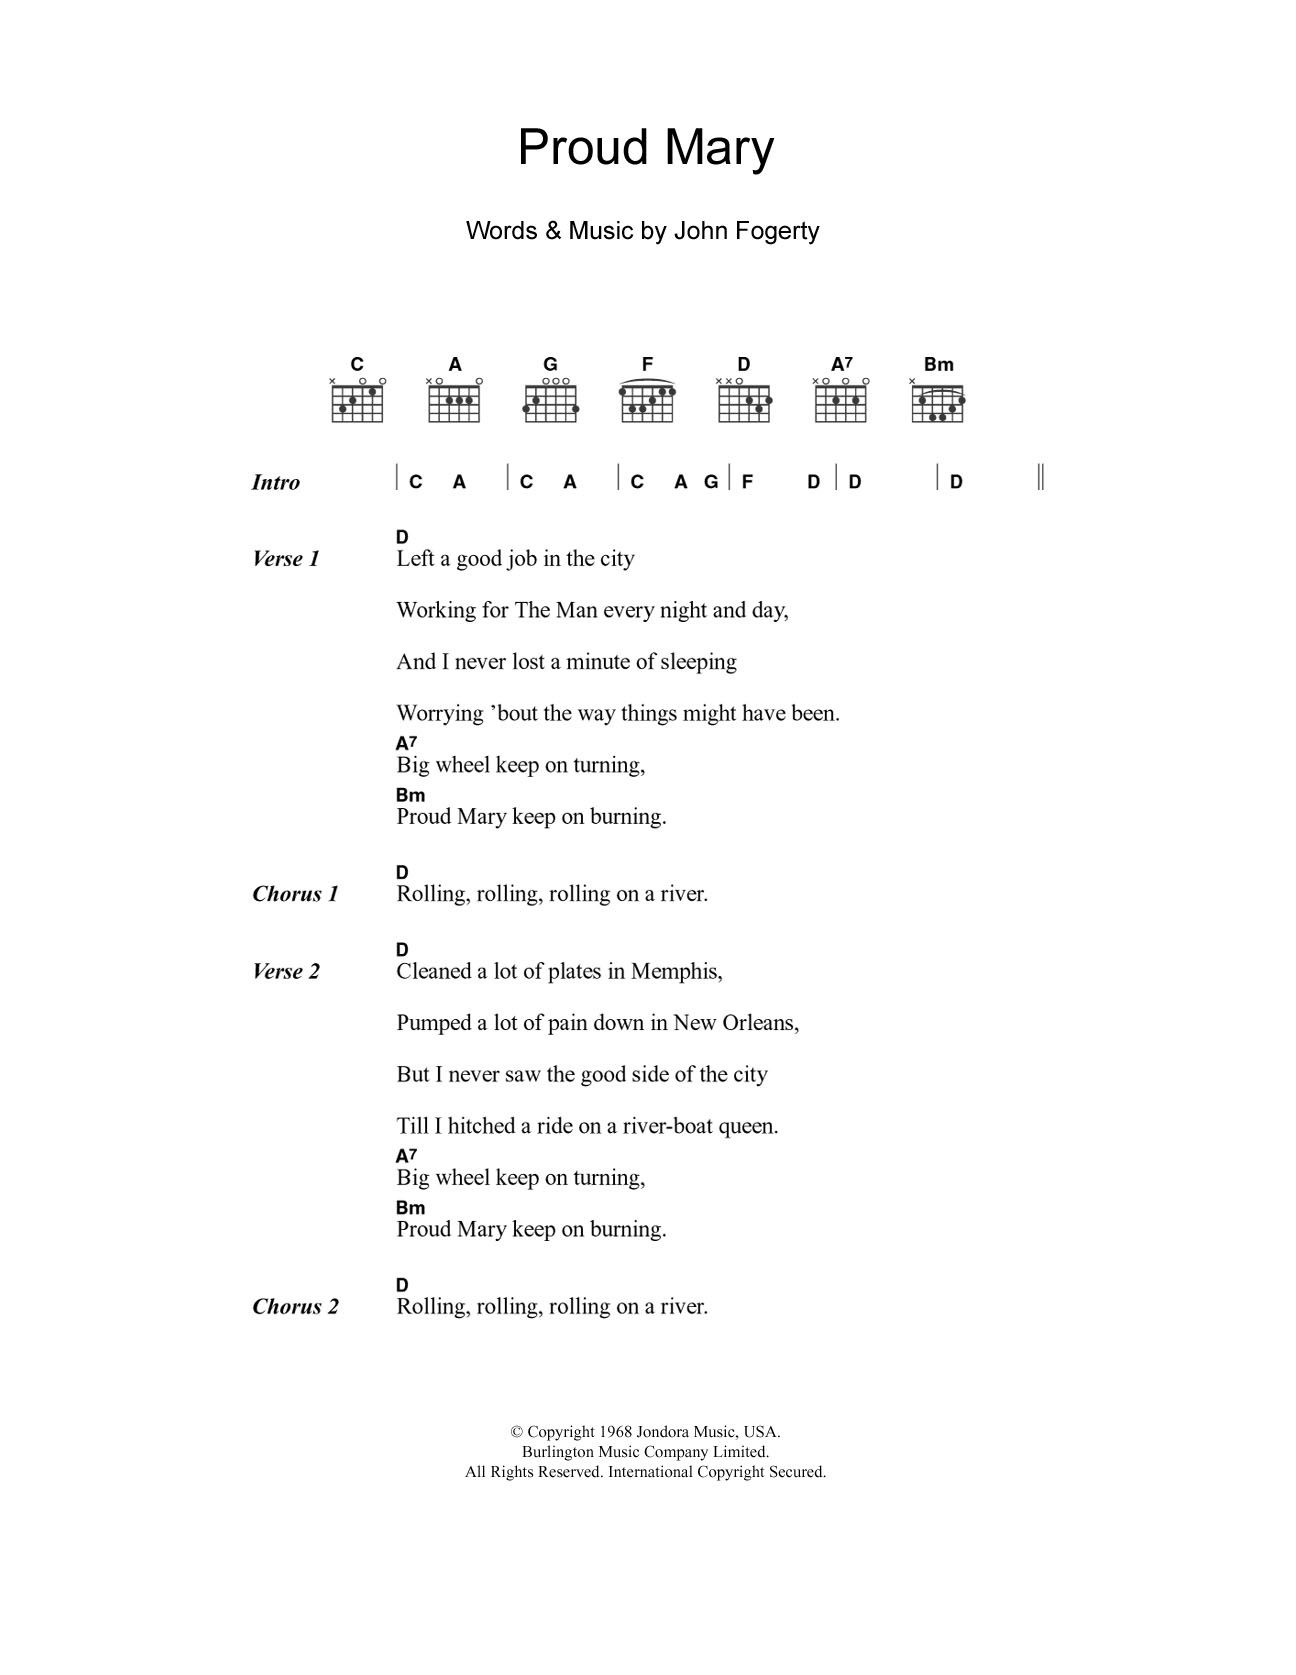 Proud Mary Sheet Music Creedence Clearwater Revival Lyrics Chords